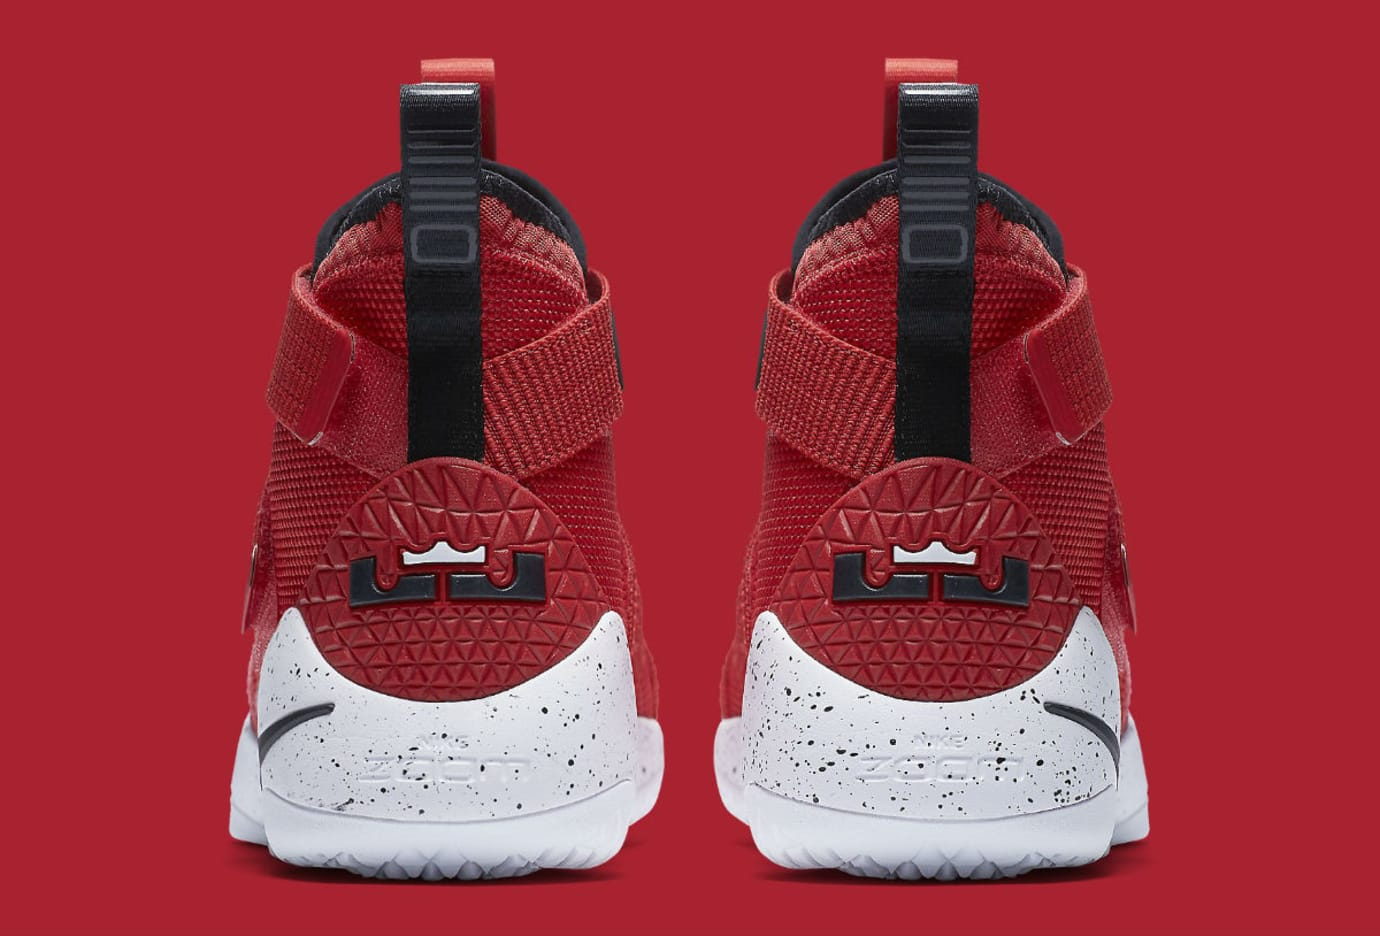 5babe77c26458 Nike LeBron Soldier 11 University Red Release Date Heel 897644-601